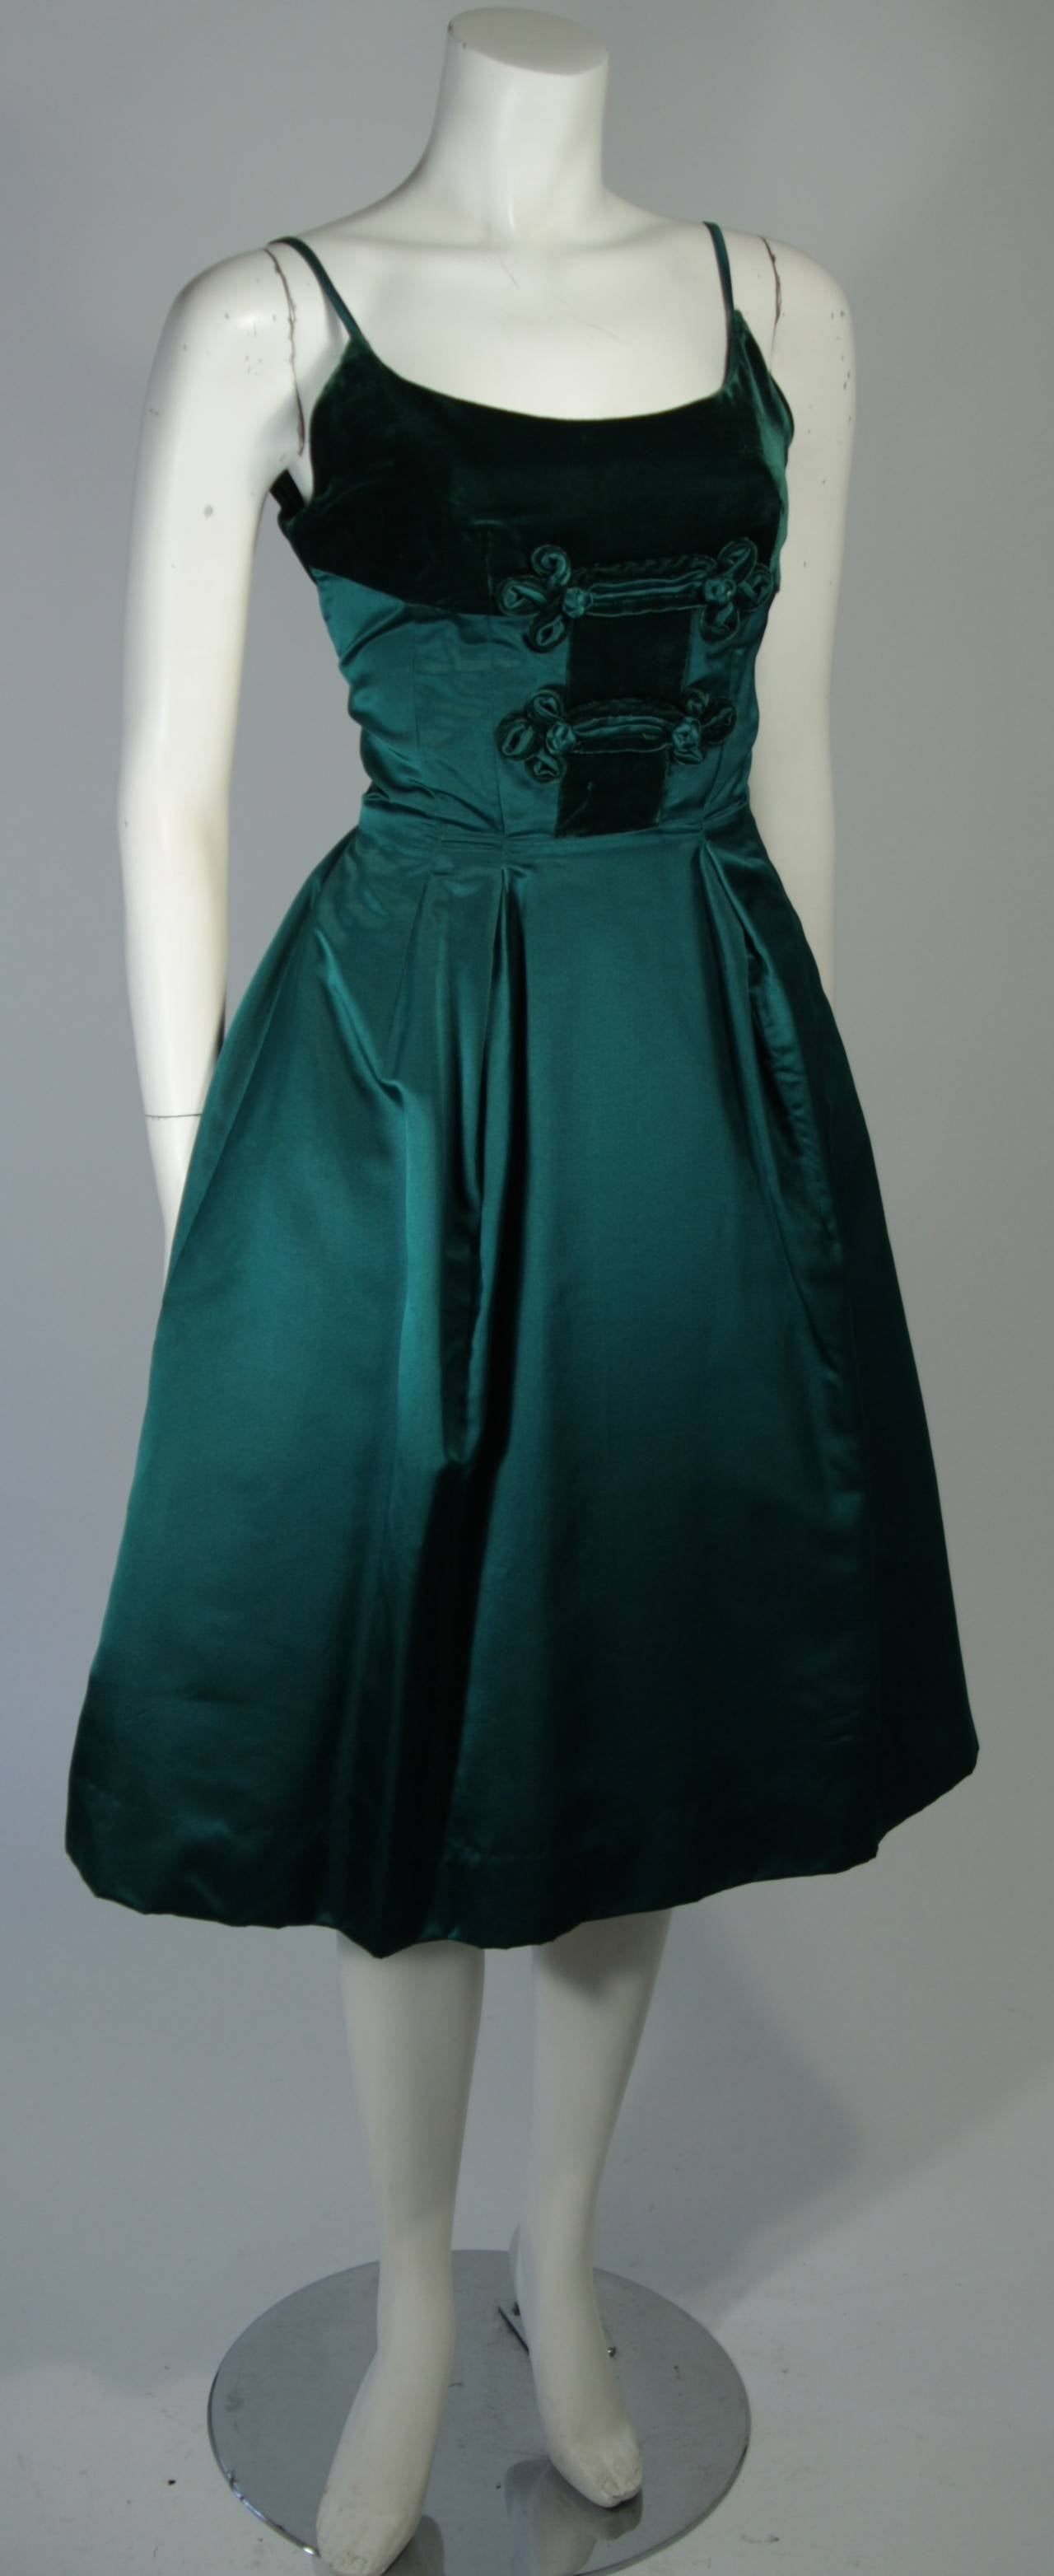 Oleg Cassini Emerald Silk and Velvet Applique Dress Size Small In Excellent Condition For Sale In Los Angeles, CA